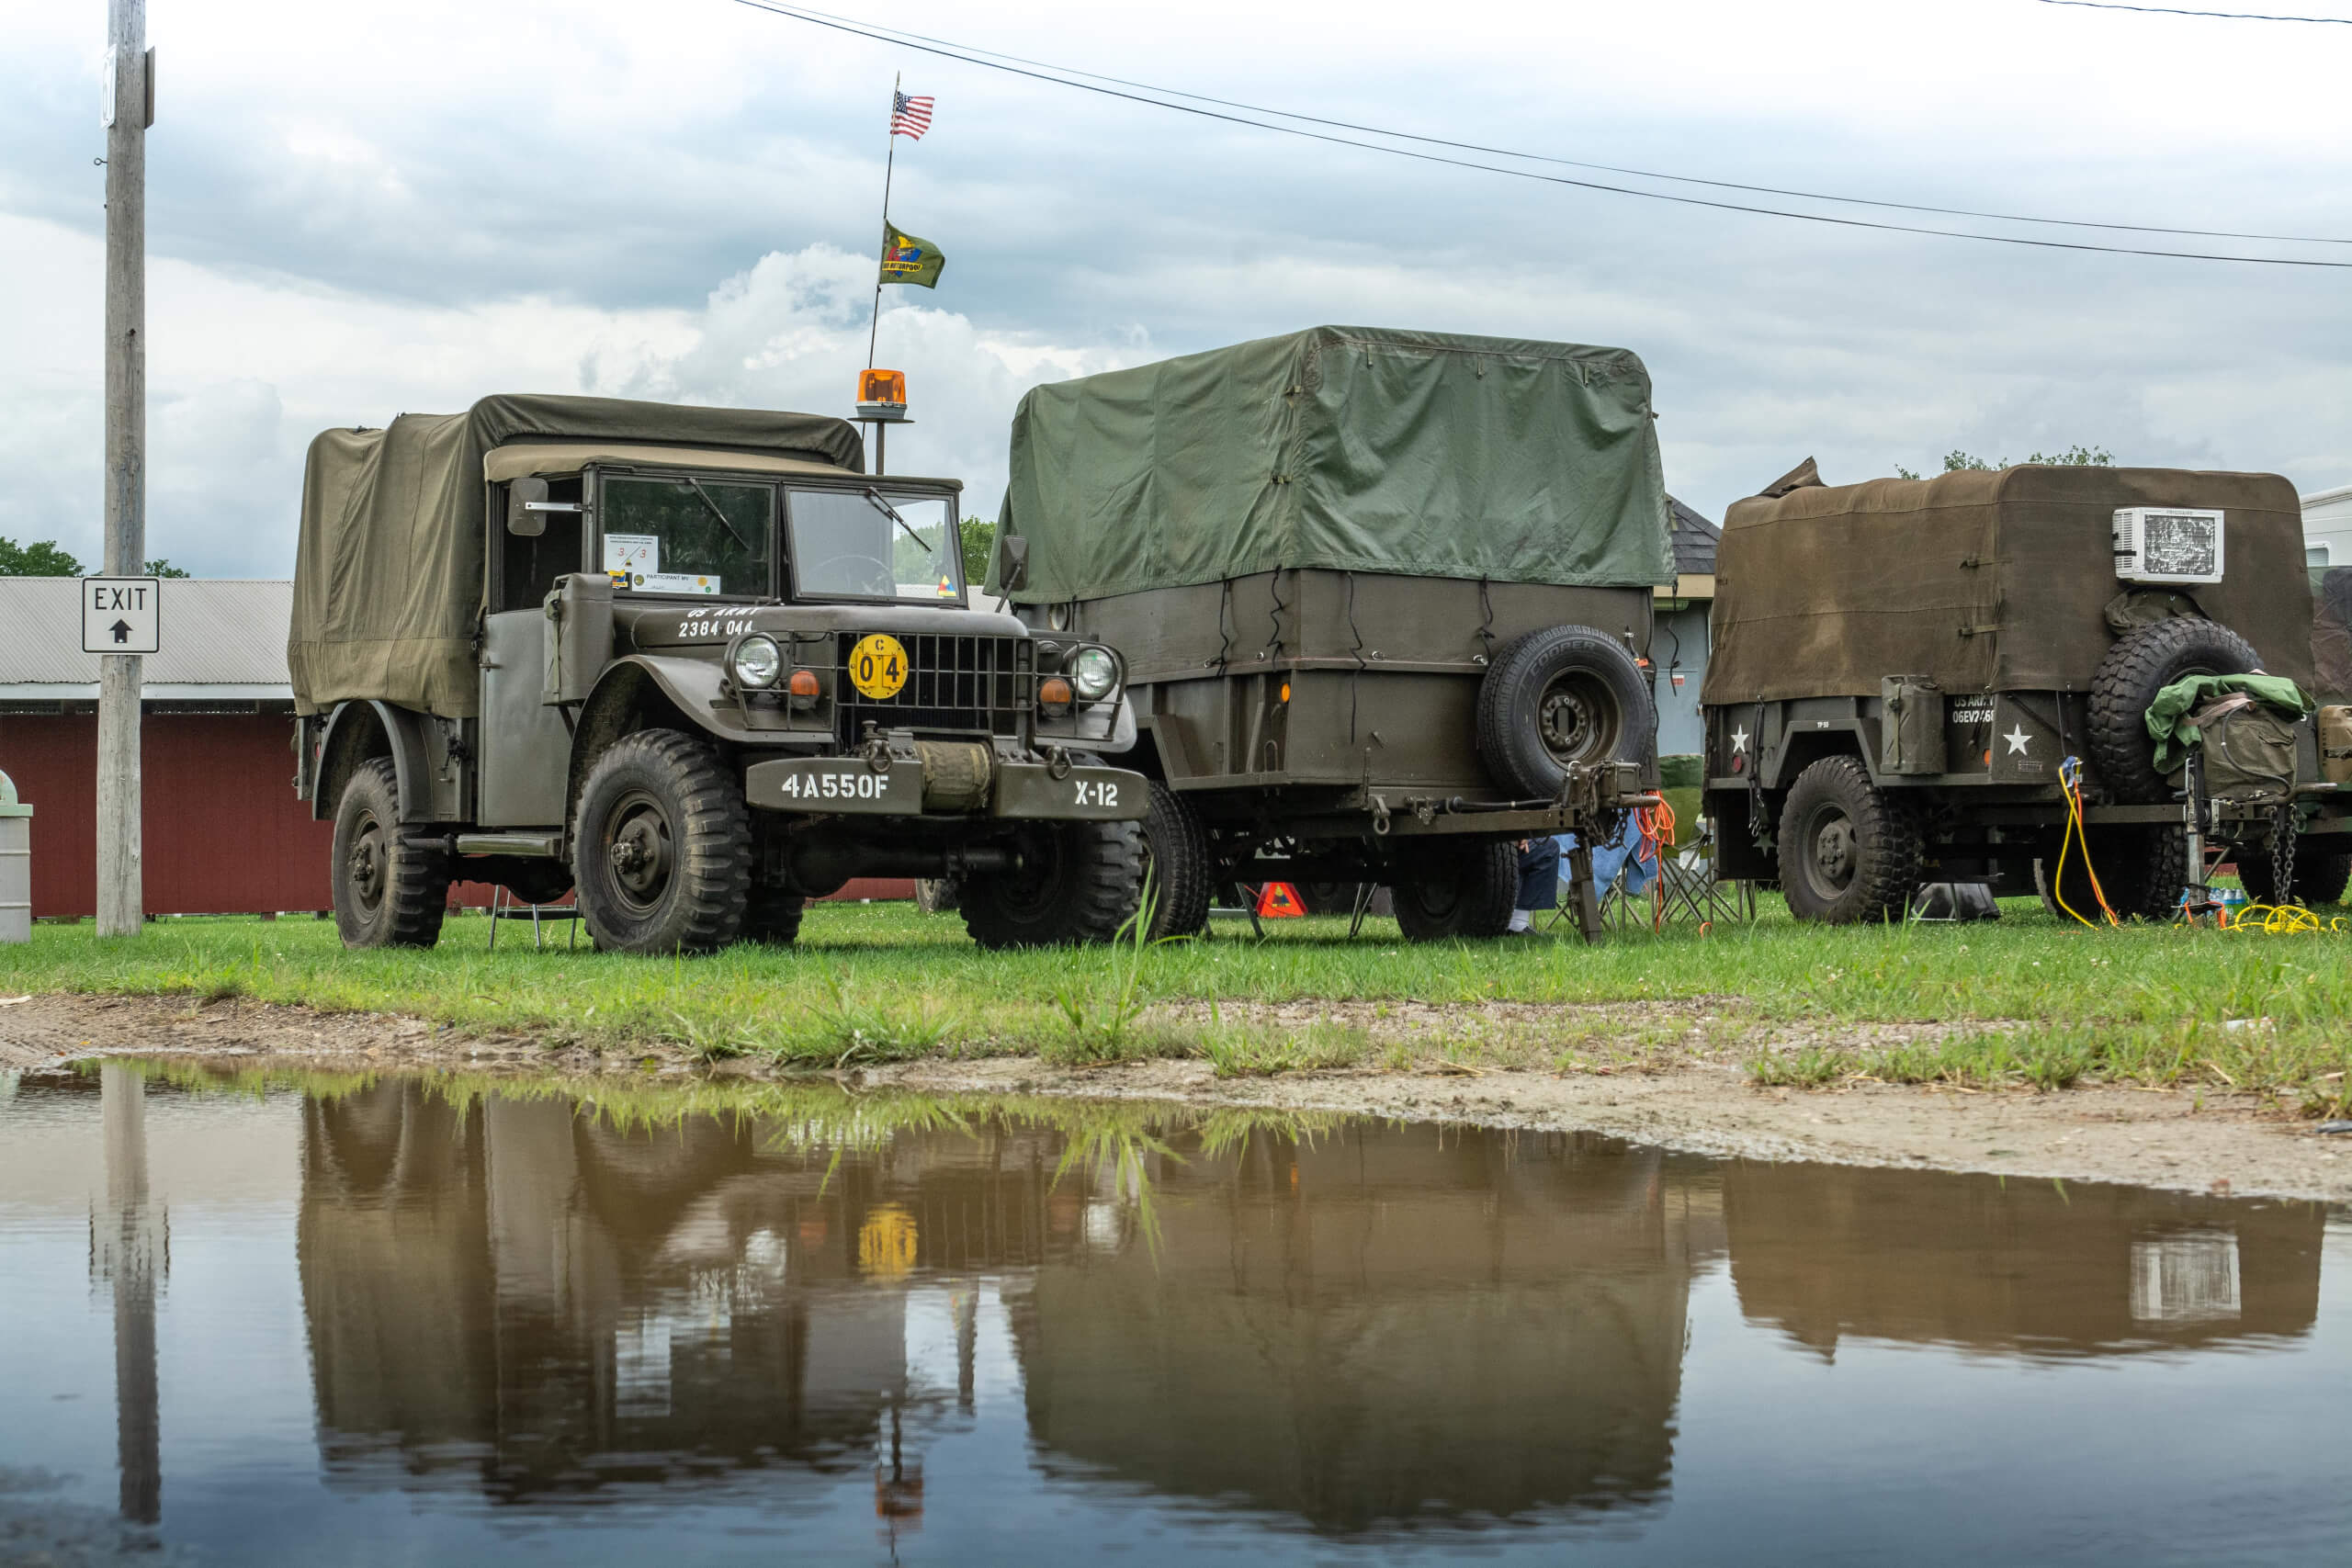 The Military Vehicle Preservation Association Convoy is driving across the country to celebrate the same trip conducted by the Army in 1919.